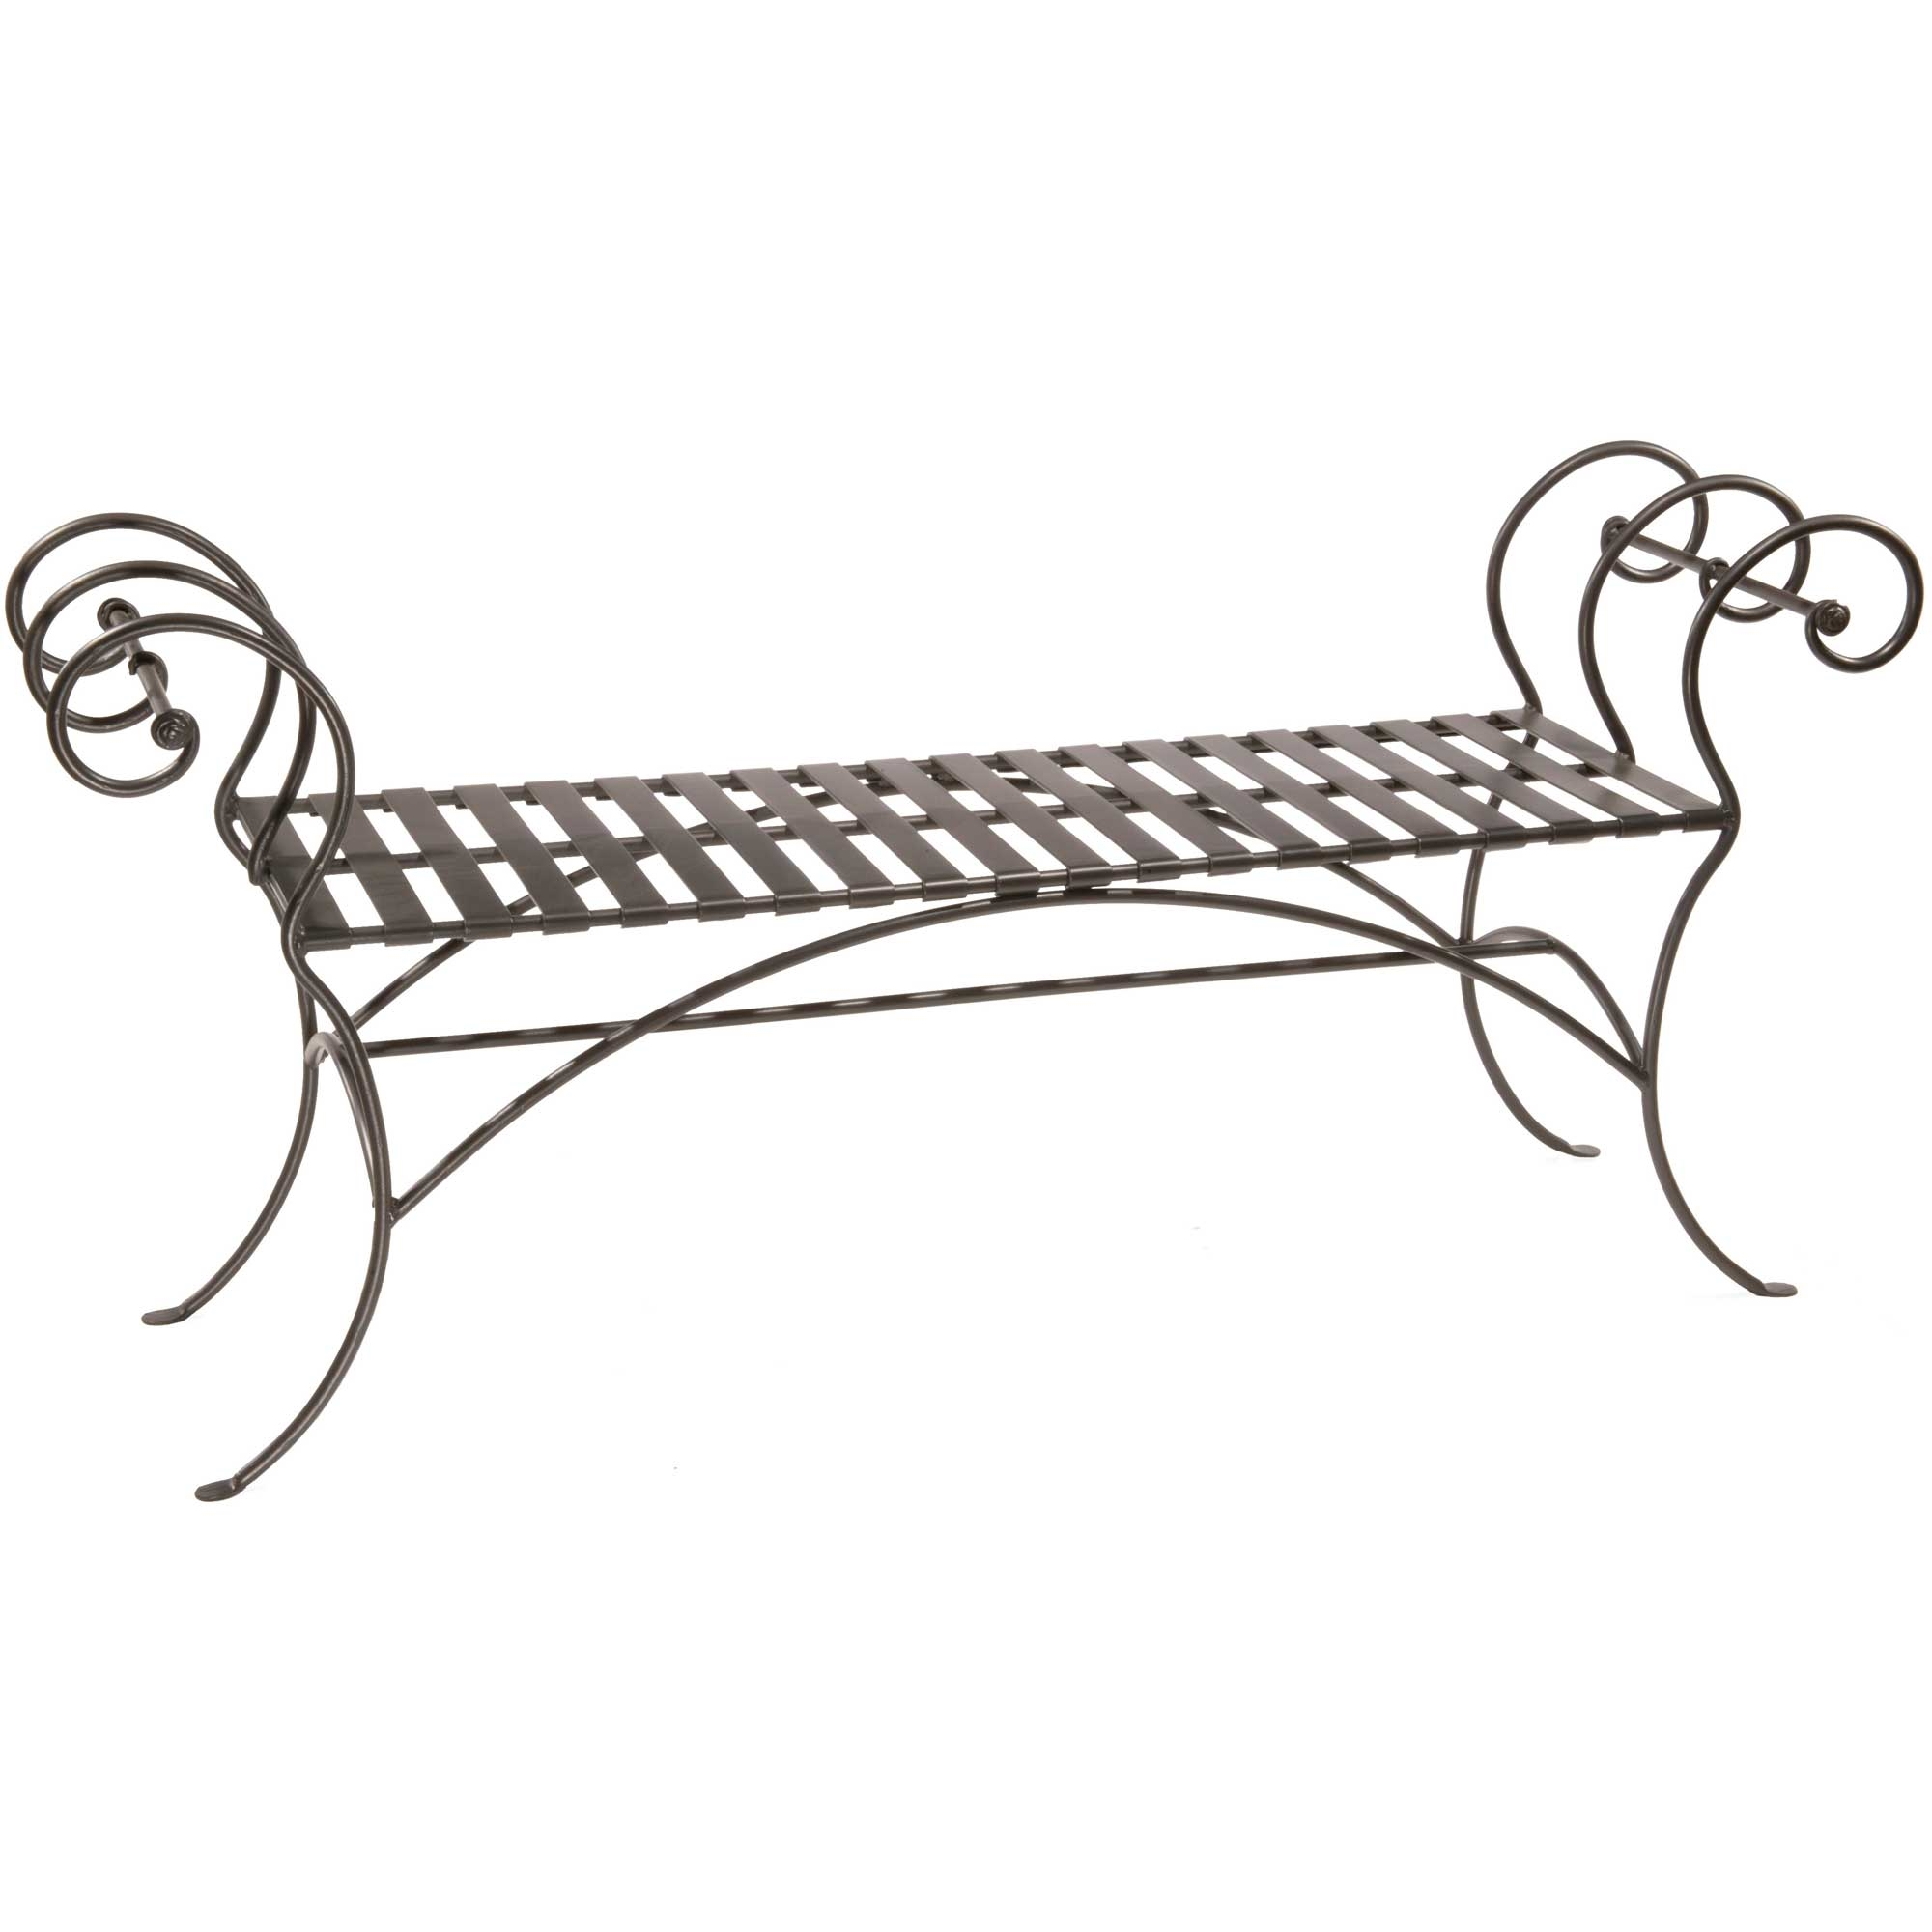 Waterbury Wrought Iron Bench with No Back Rest